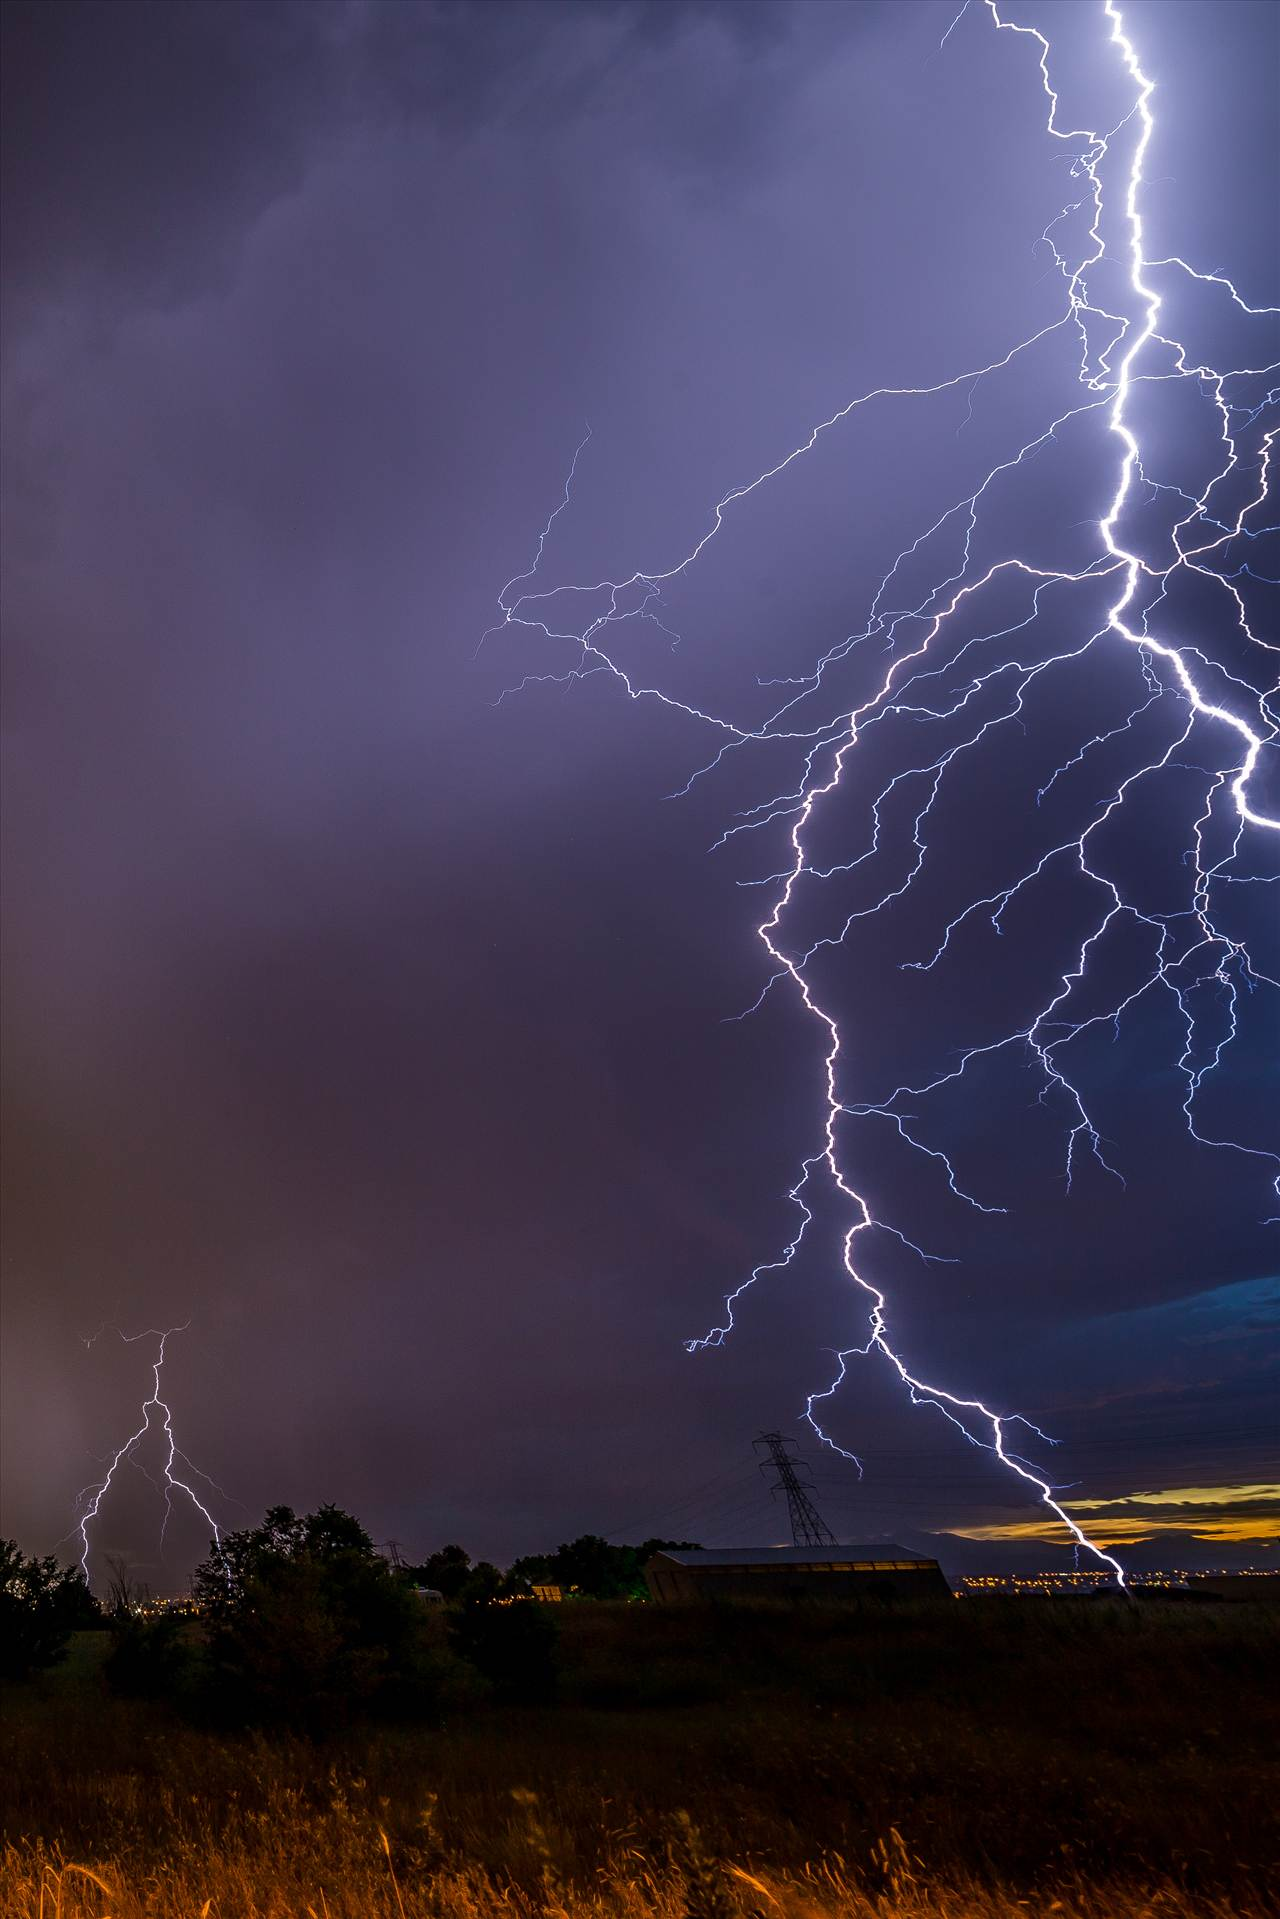 Lightning Flashes 9 - A series of shots from the end of the street, during a powerful lightning storm near Reunion, Colorado. This one was so close it did't fit entirely in the frame. by D Scott Smith